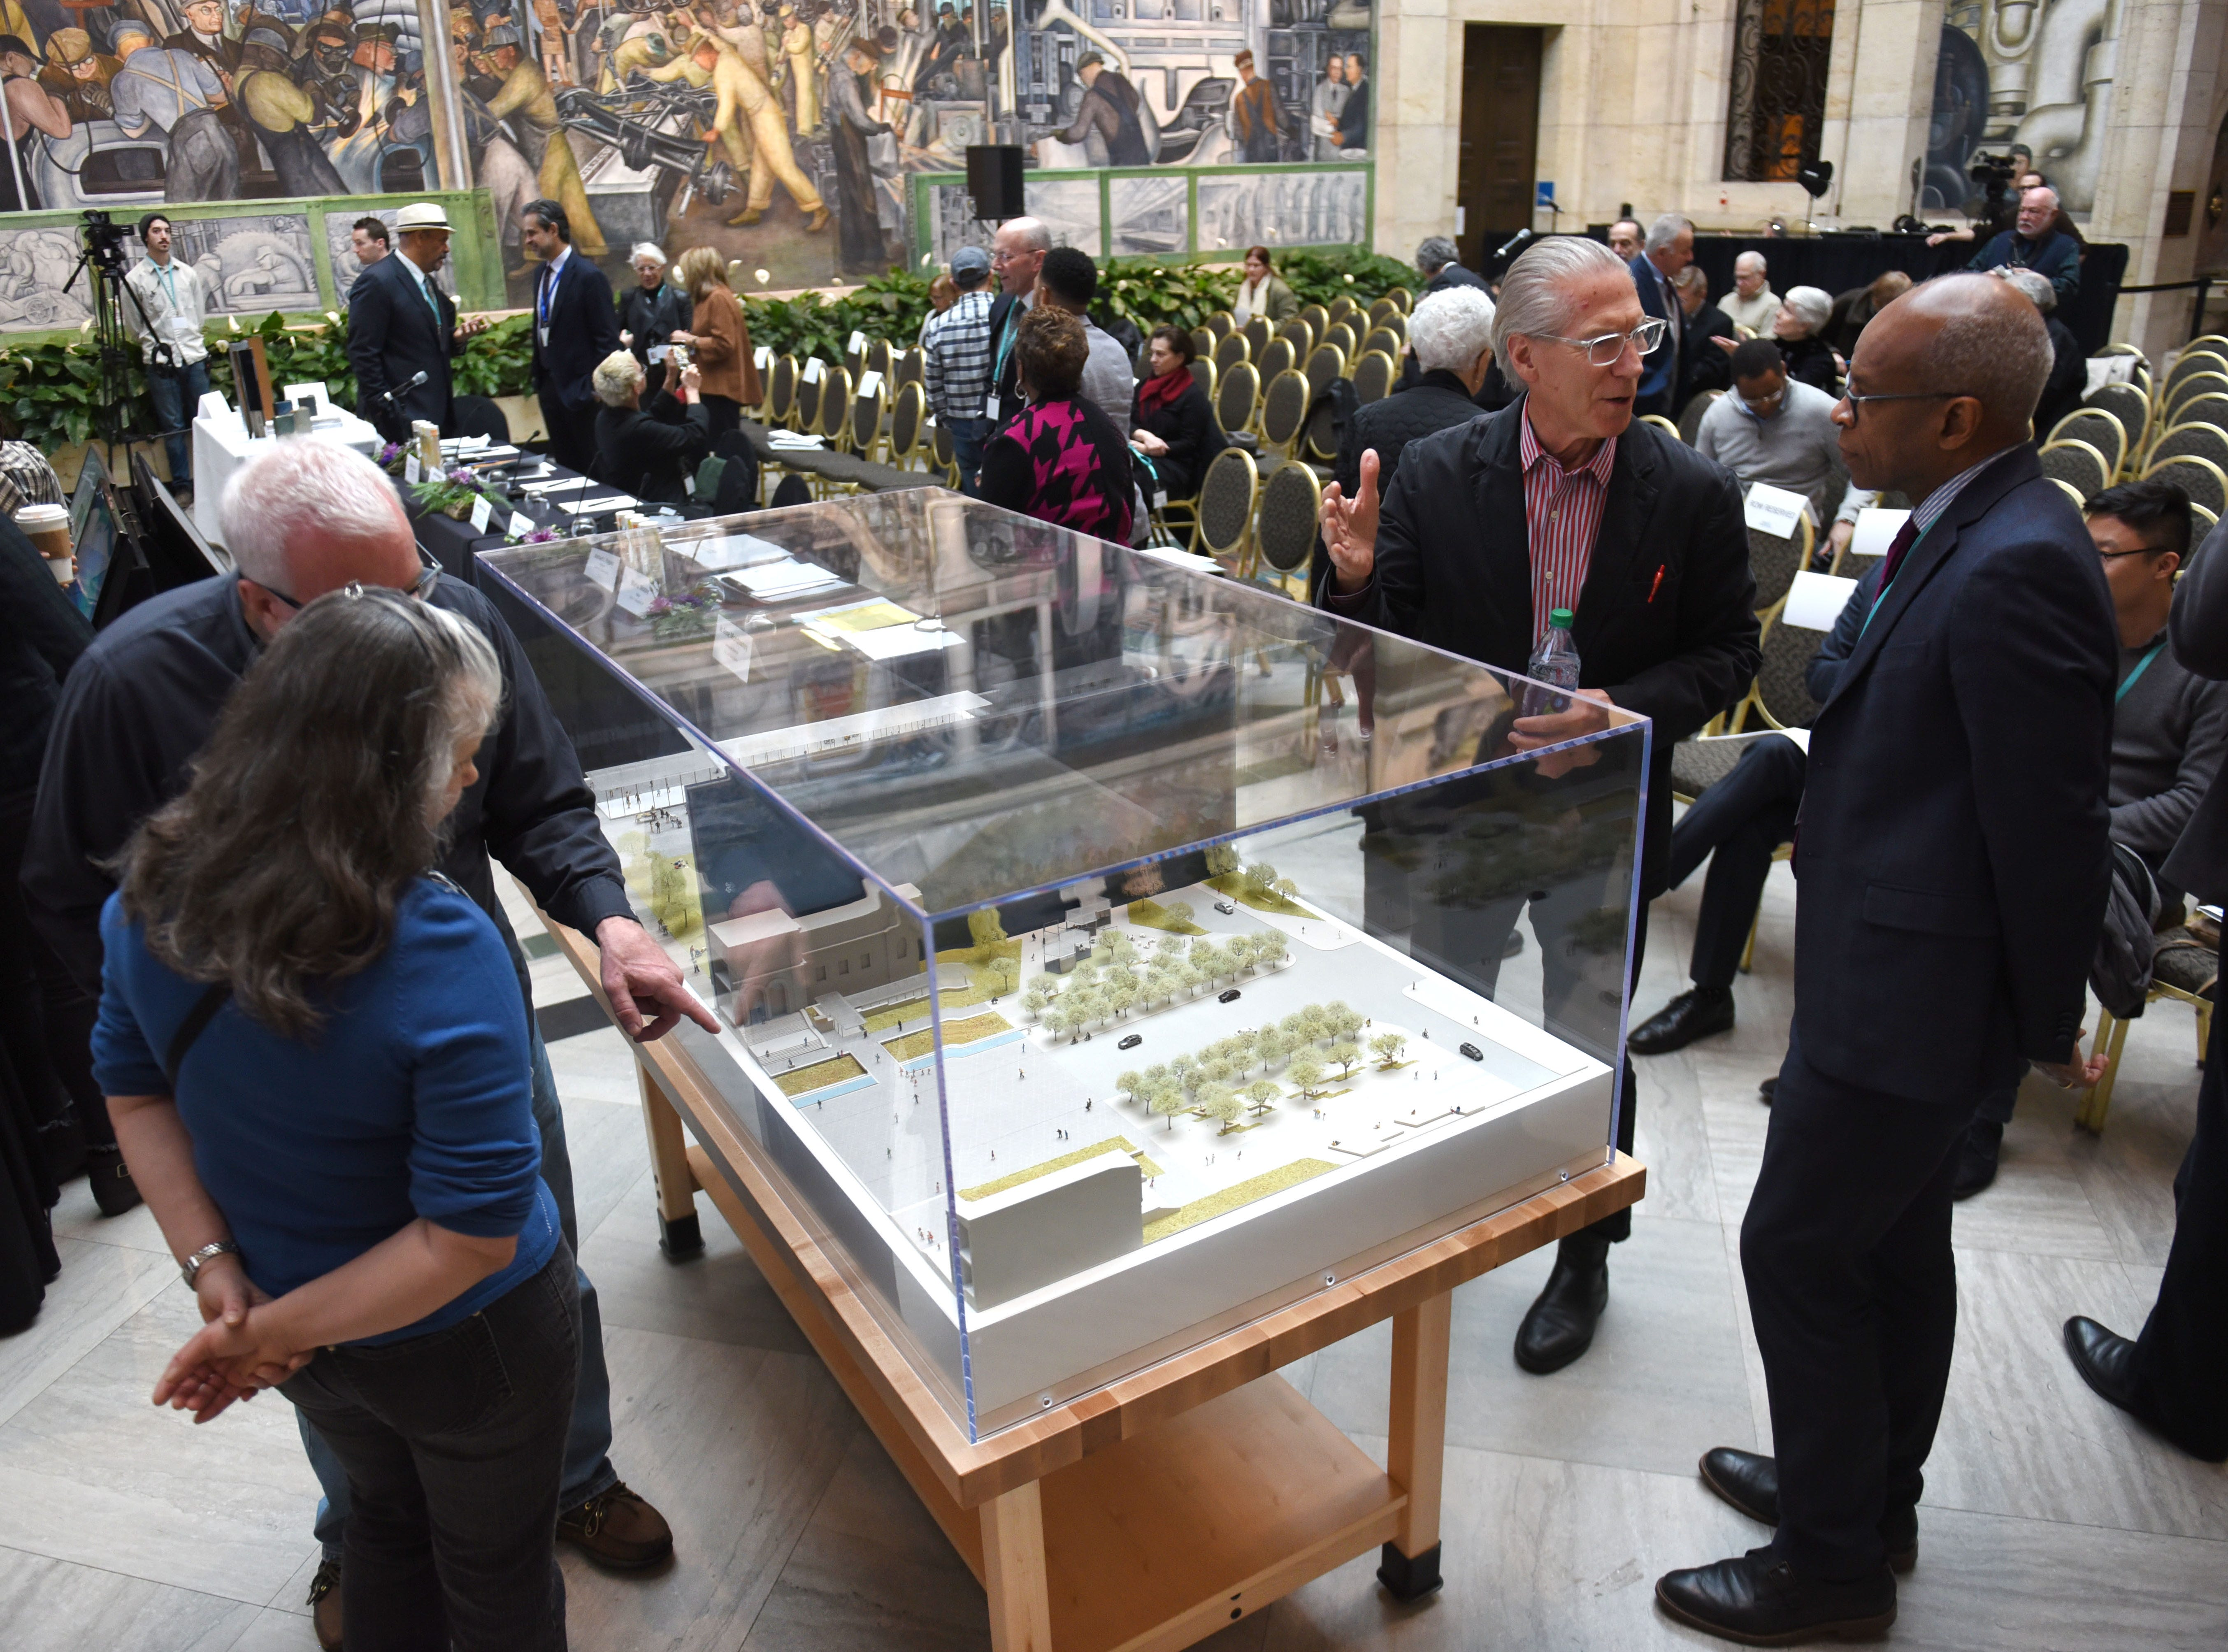 Jamie Carpenter (center), of James Carpenter Design Associates, shows a model by Mikyoung Kim Design to Maurice Cox (right), director of the city of Detroit's Planning Department, for the DIA Plaza which is part of the Midtown Cultural Connections on Wednesday, January 23, 2019.